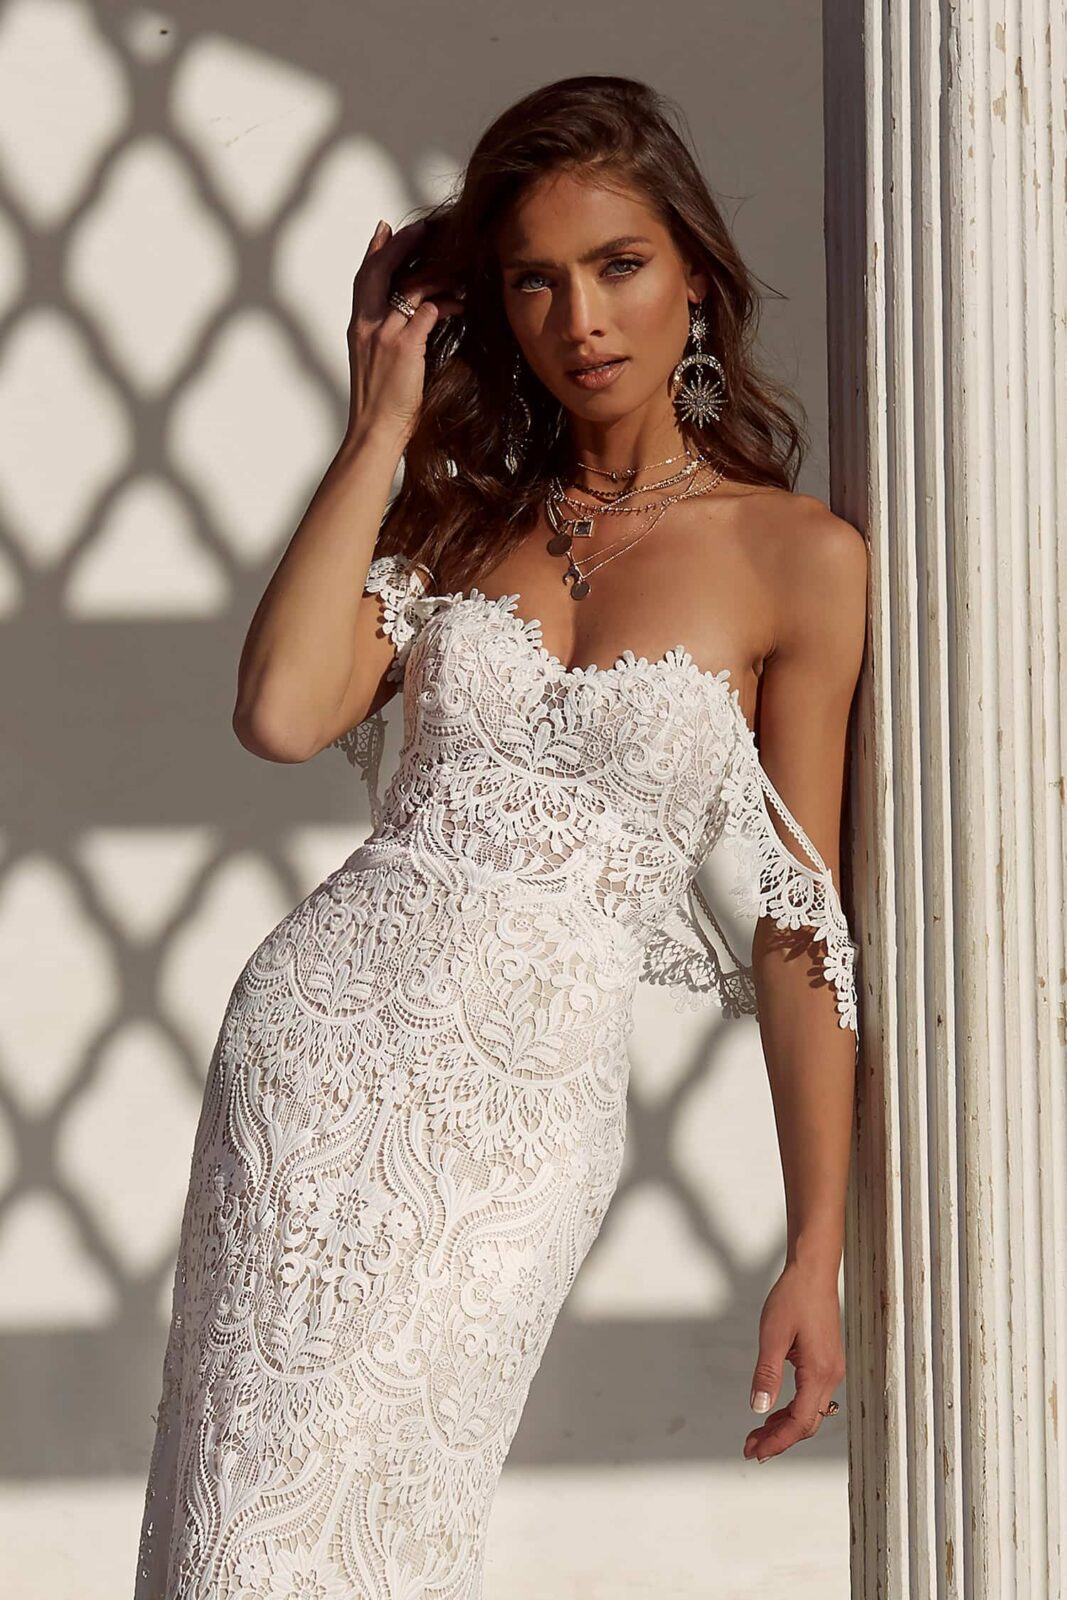 ANDIE-ML17655-FULL-LACE-FITTED-GOWN-WITH-SWEETHEART-NECKLINE-AND-DETACHABLE-OFF-SHOULDER-STRAPS-WEDDING-DRESS-MADI-LANE-BRIDAL10